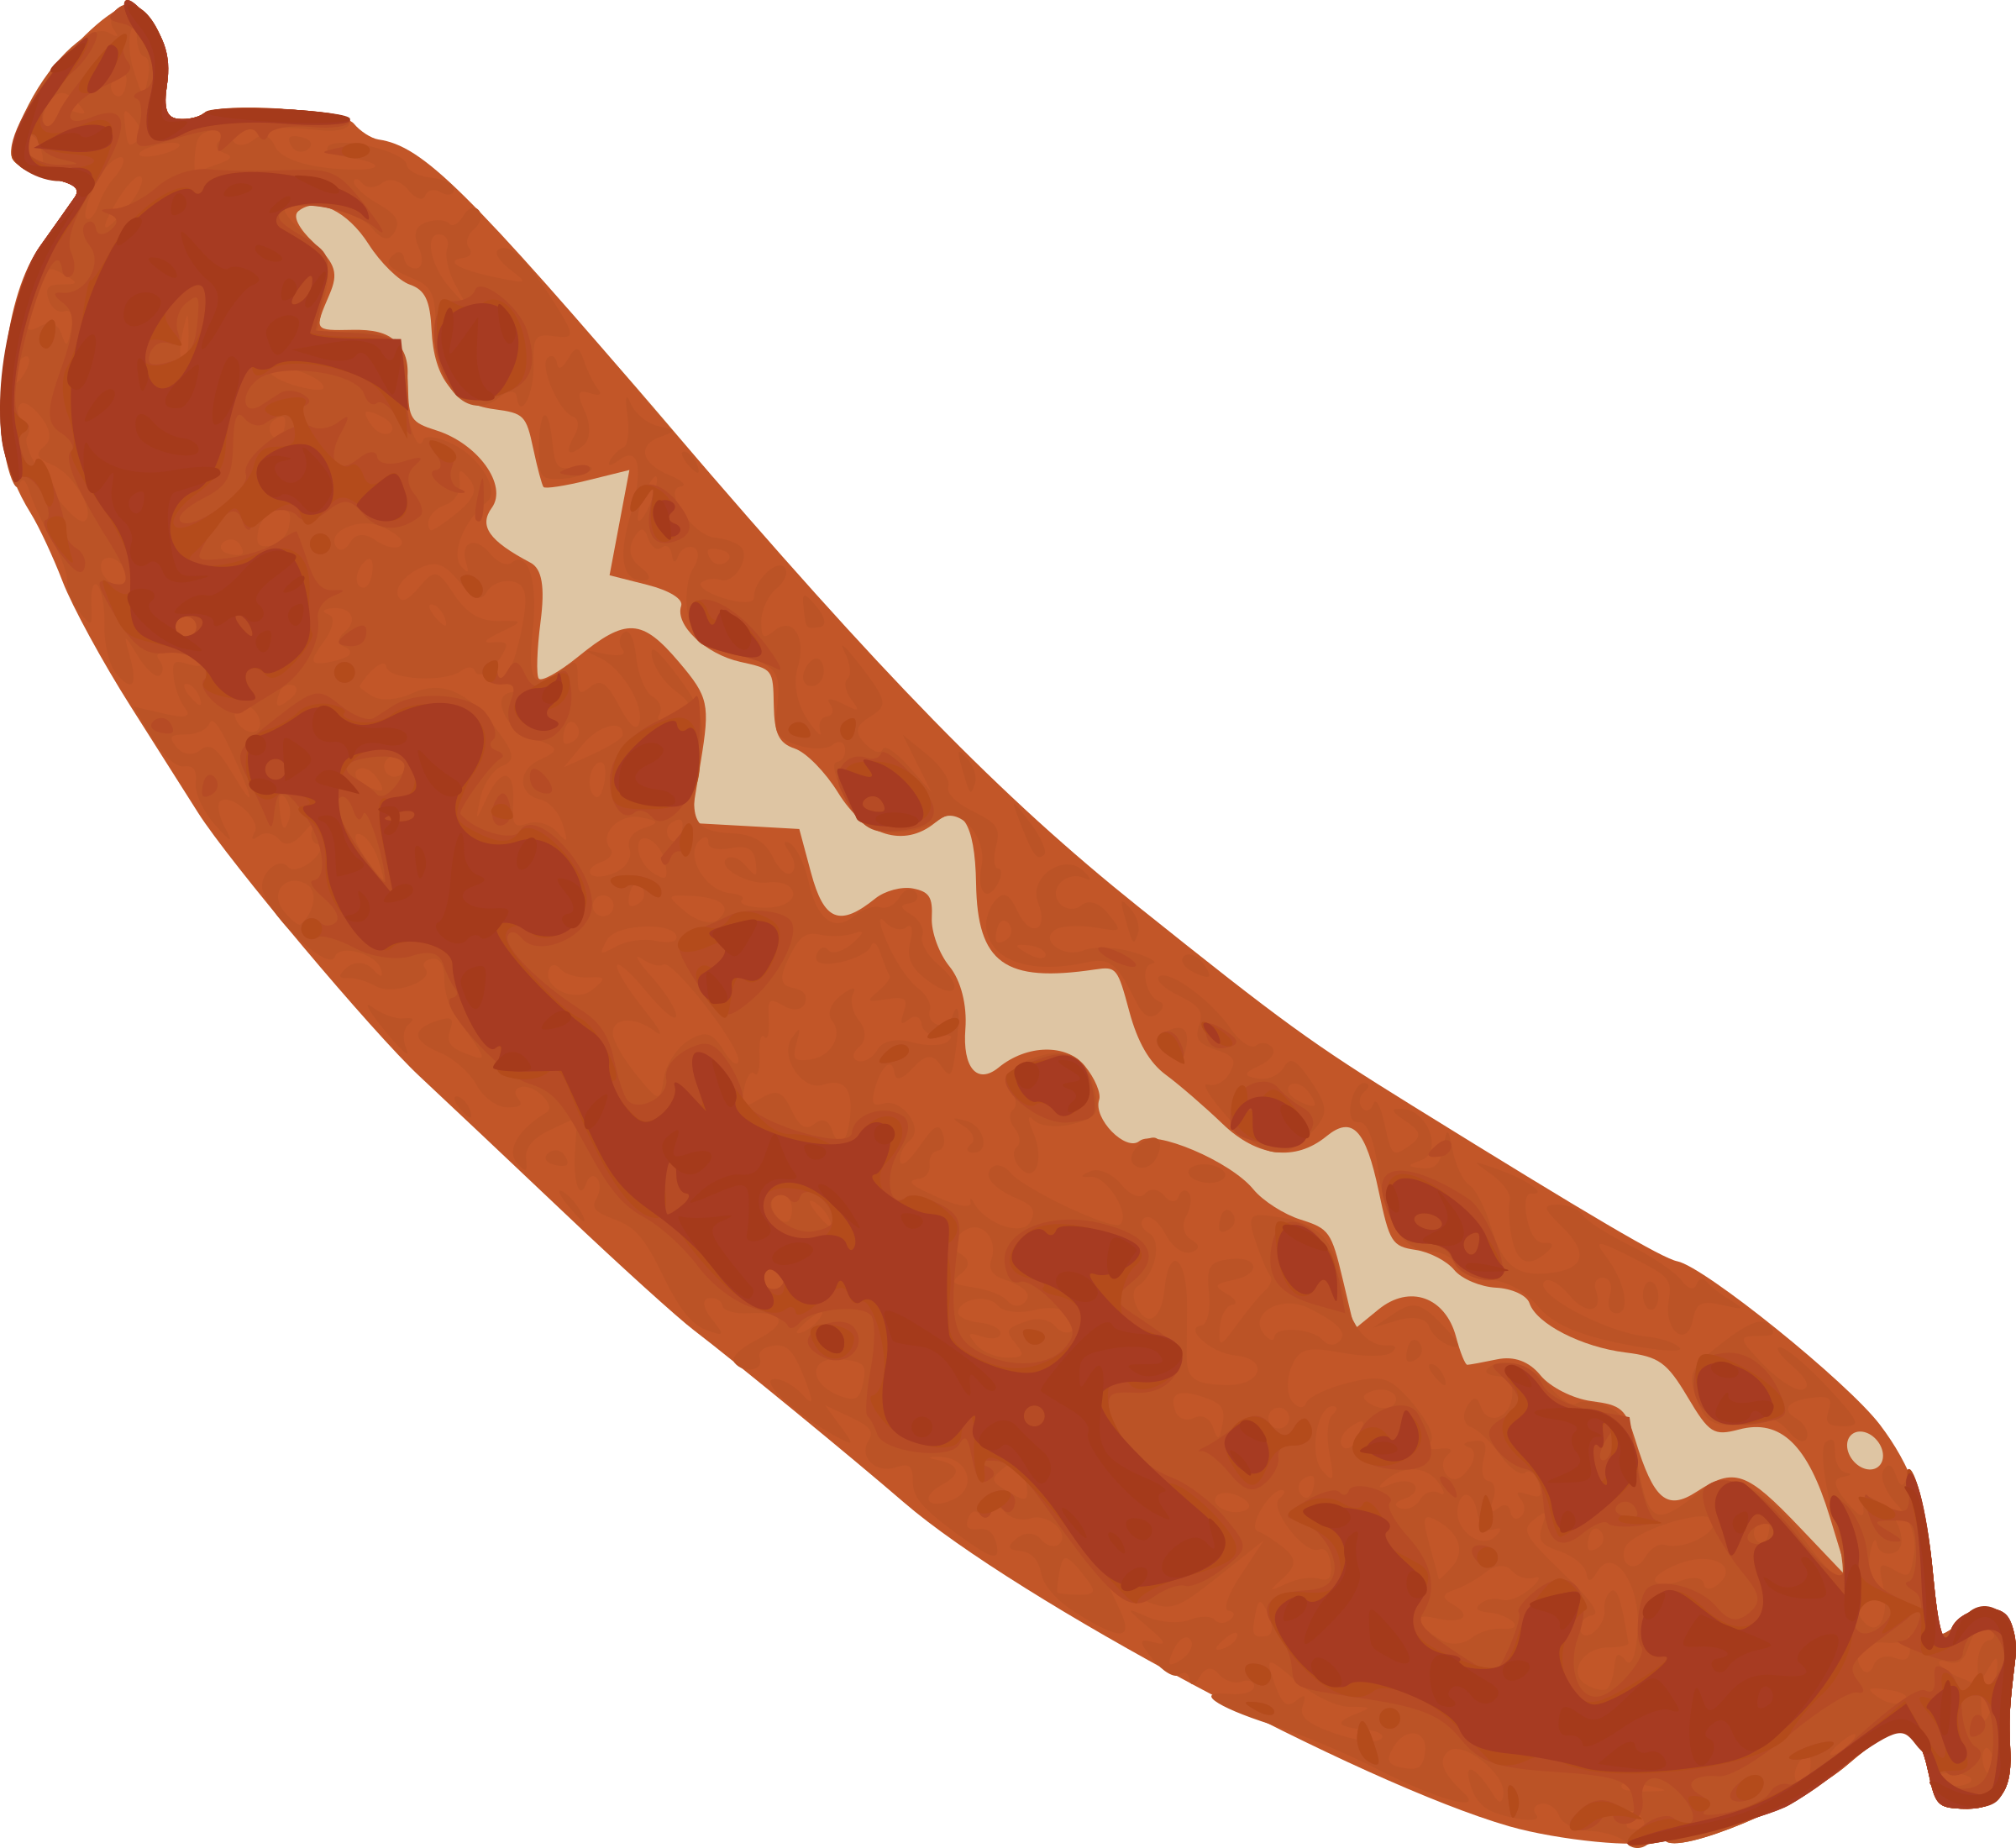 Sausage clipart transparent background. Png images all